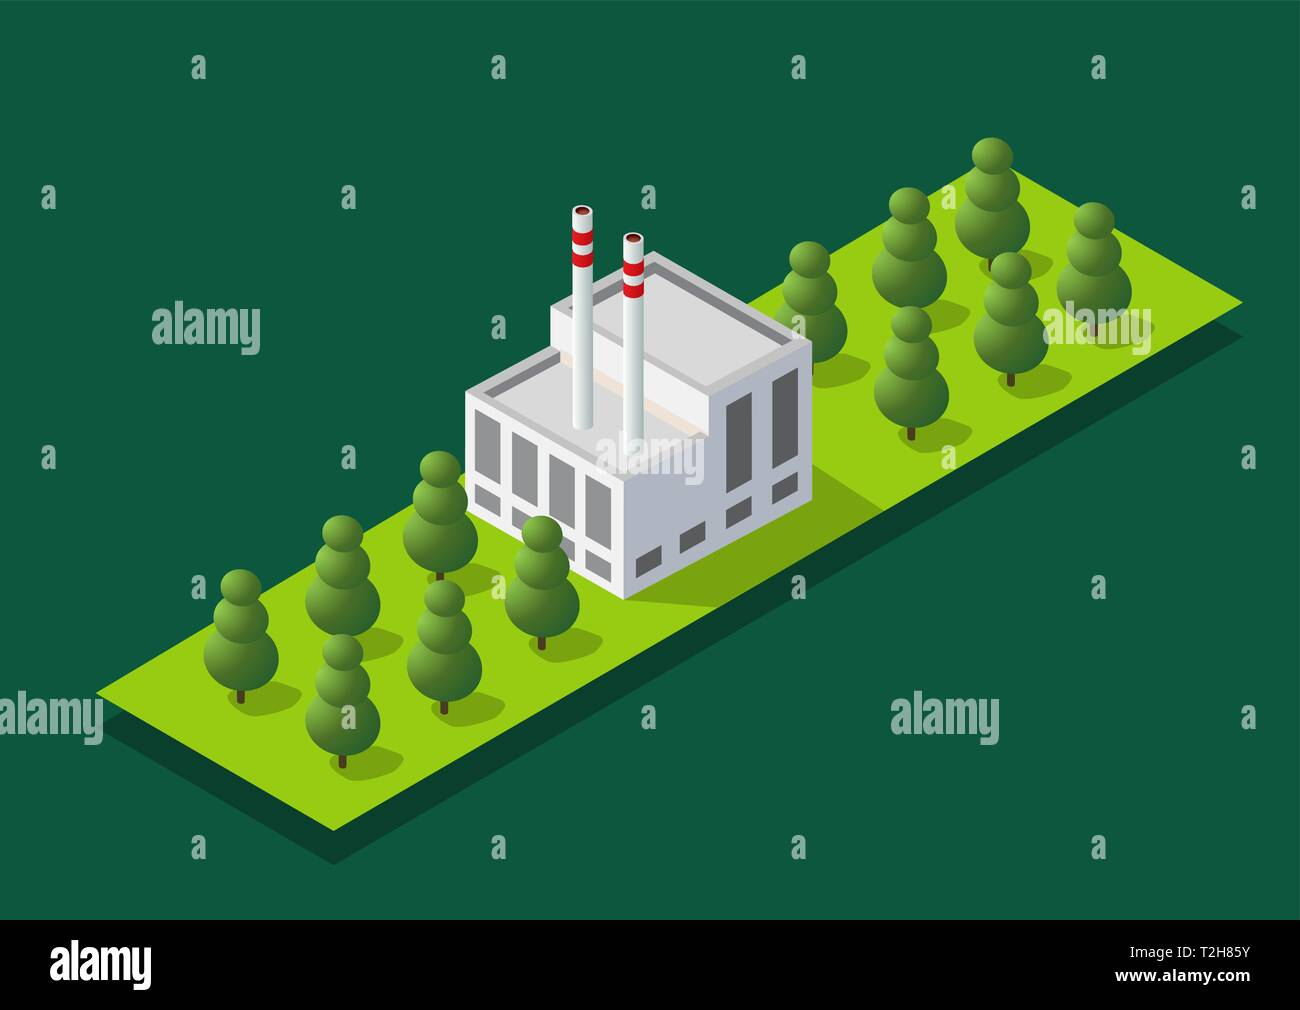 Top view of the construction industry and with 3d isometric factories, mills, boilers and warehouses. - Stock Vector